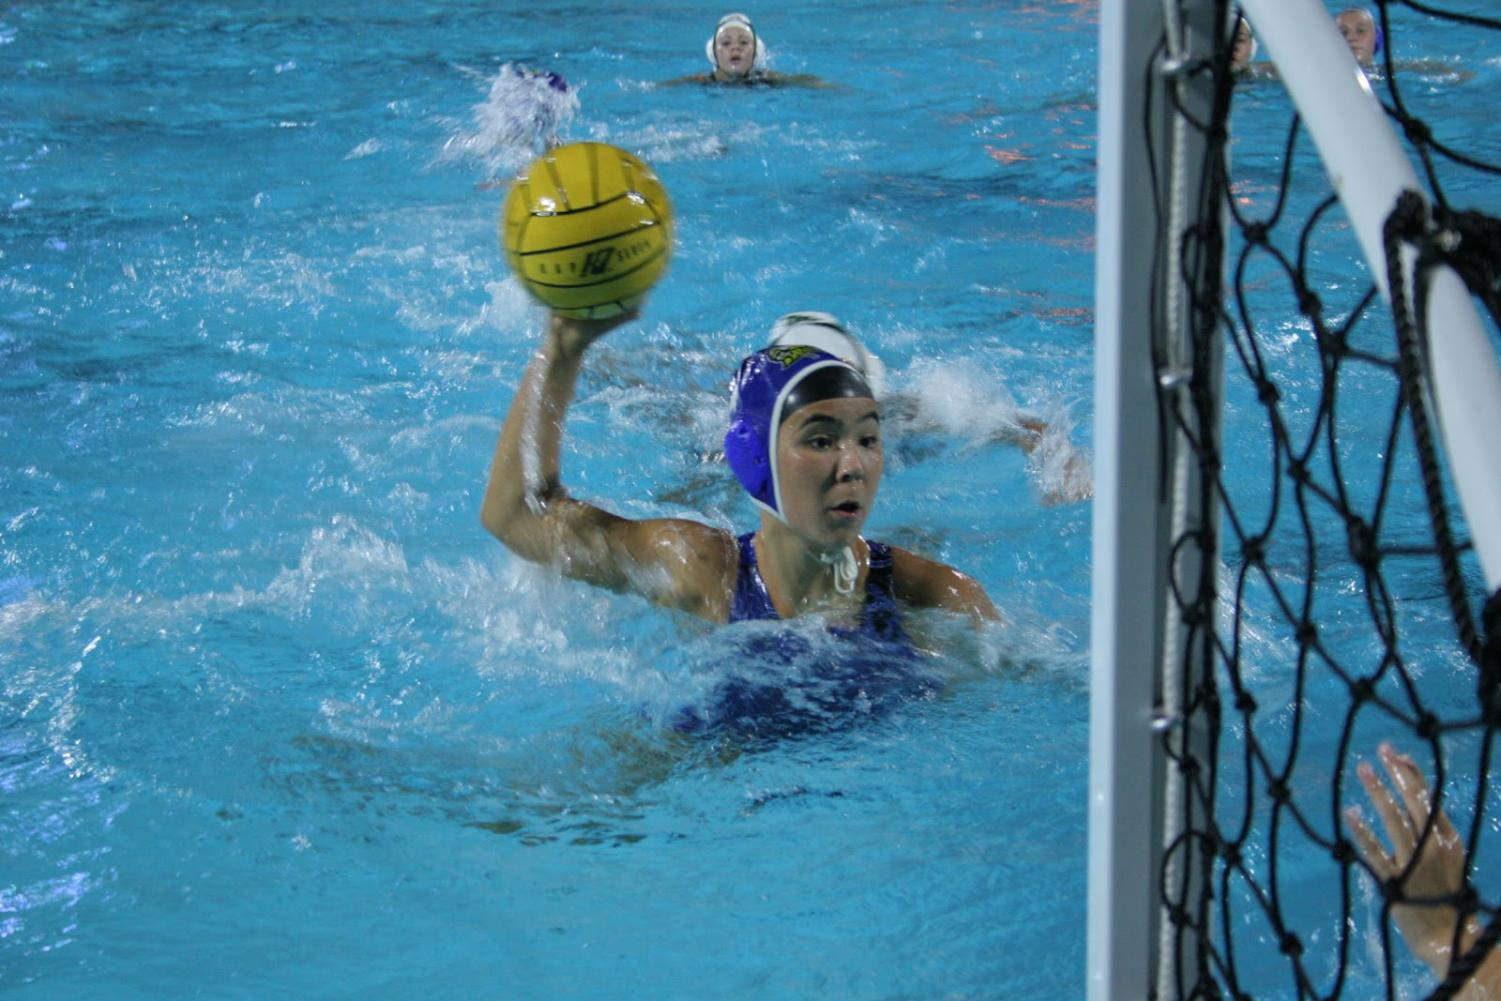 Noelani Takei (11) made four goals throughout the game, bringing herself close to the net to ensure a higher chance of scoring. Successful shots like these were the reason behind Irvington's wide score margin against Moreau.